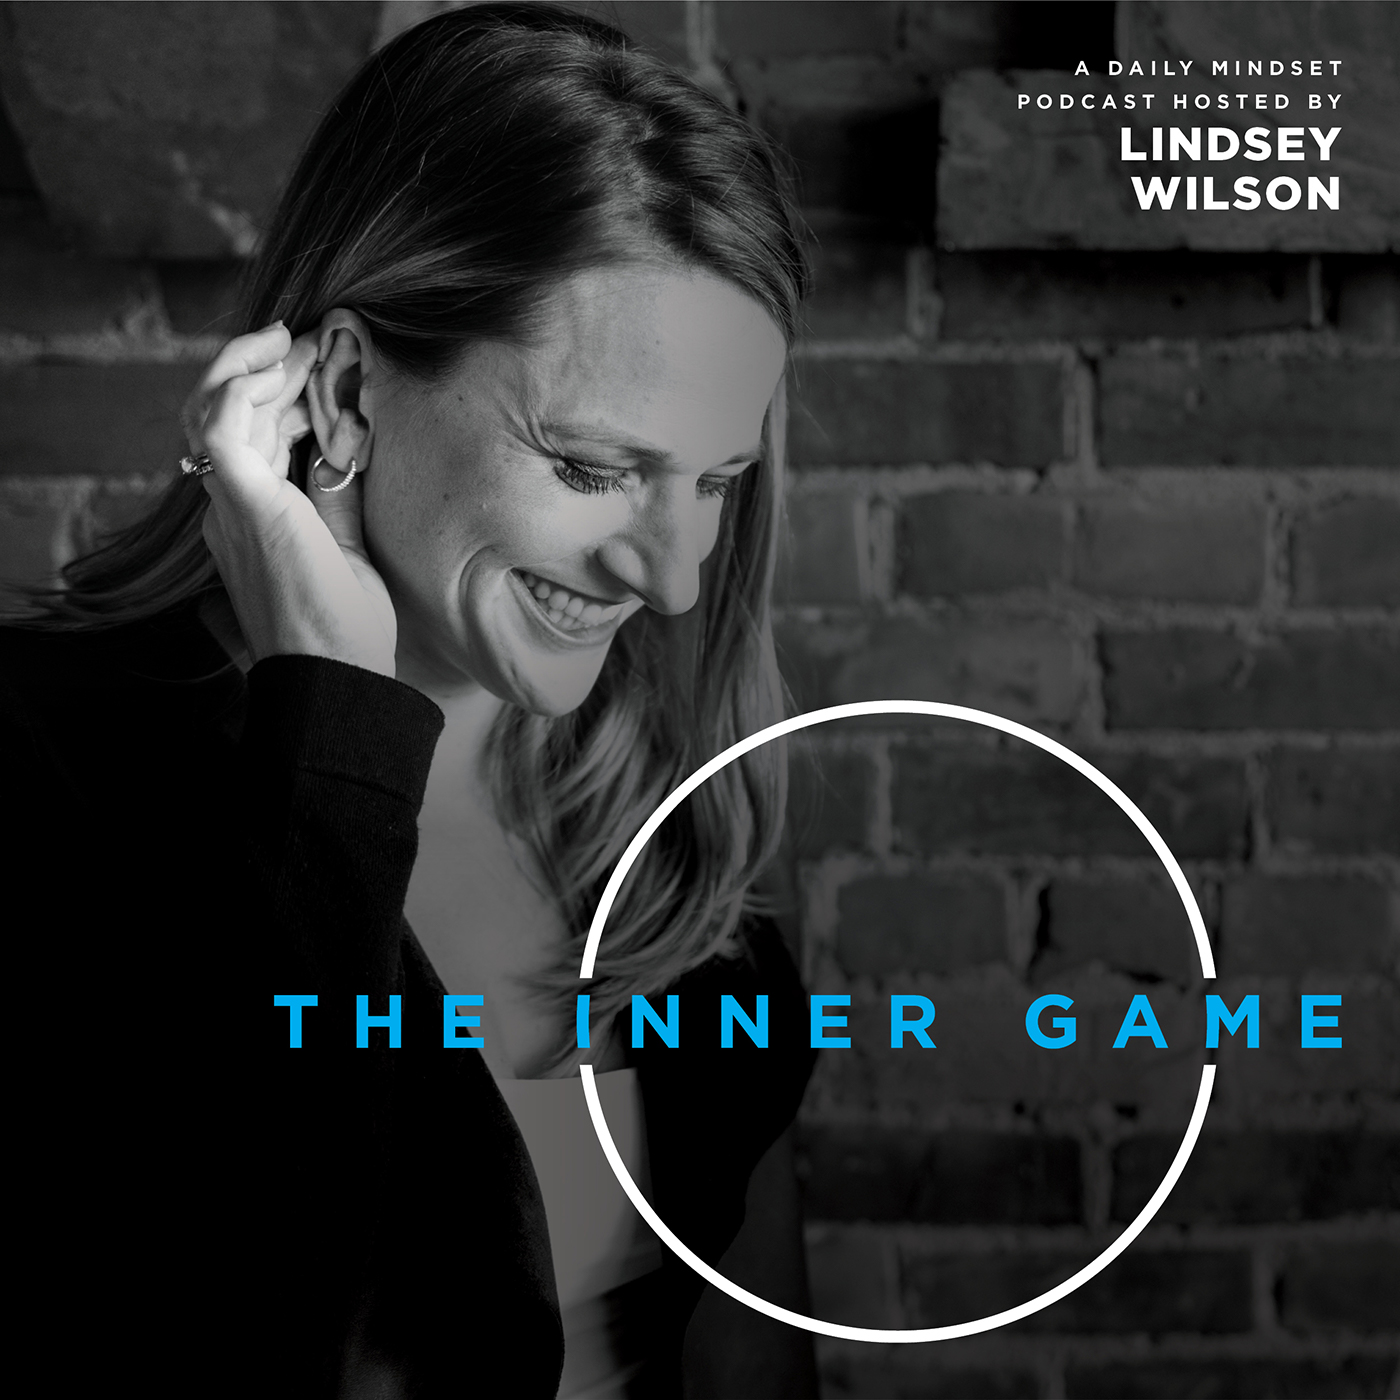 The Inner Game with Lindsey Wilson